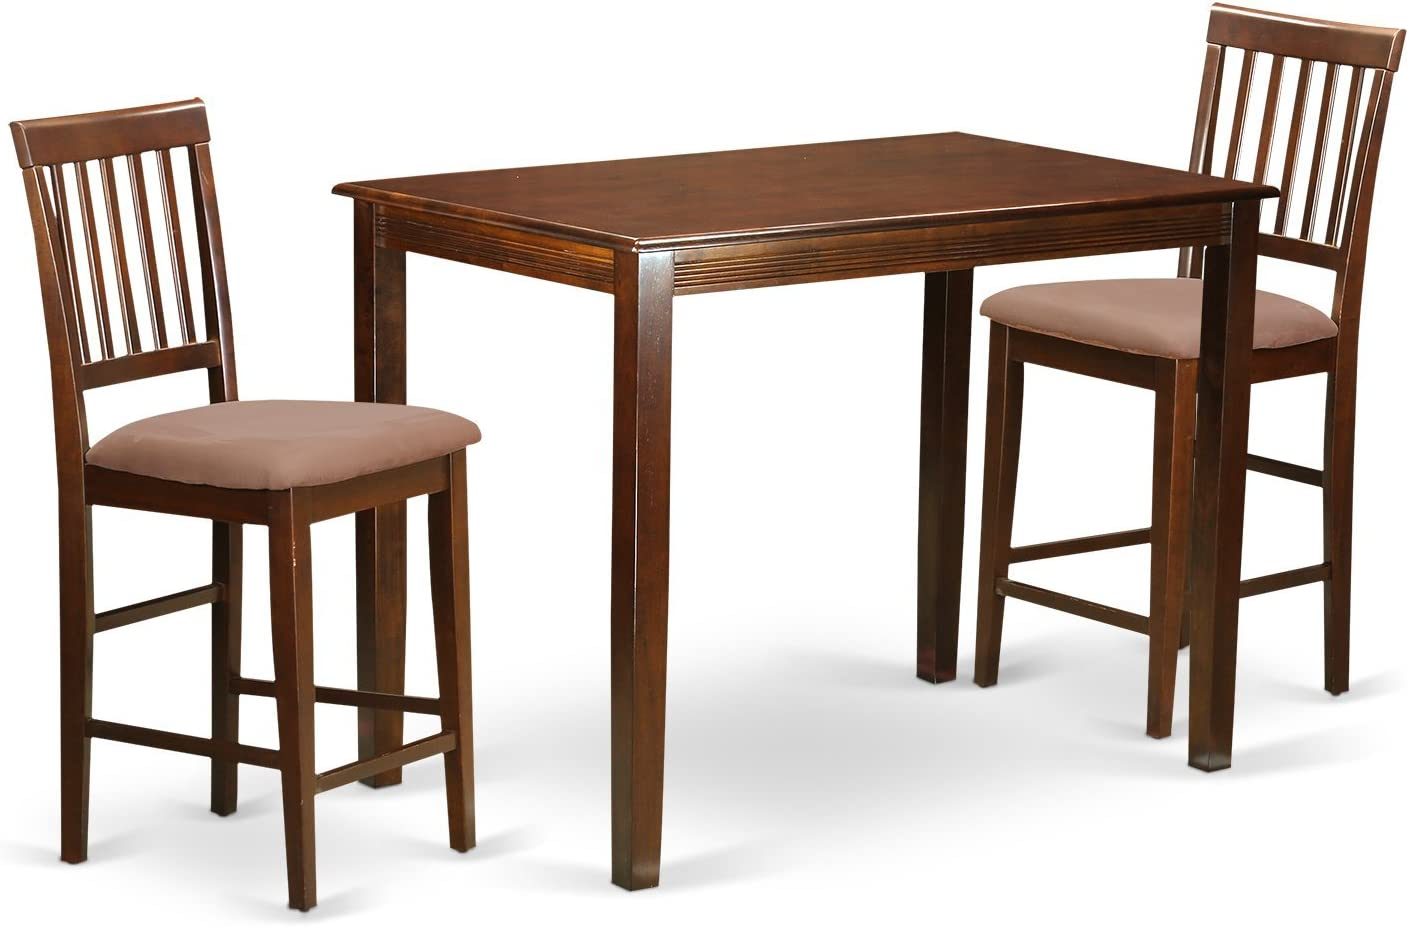 YAVN3-MAH-C 3 PC counter height Dining set – high top Table and 2 Kitchen Dining Chairs.